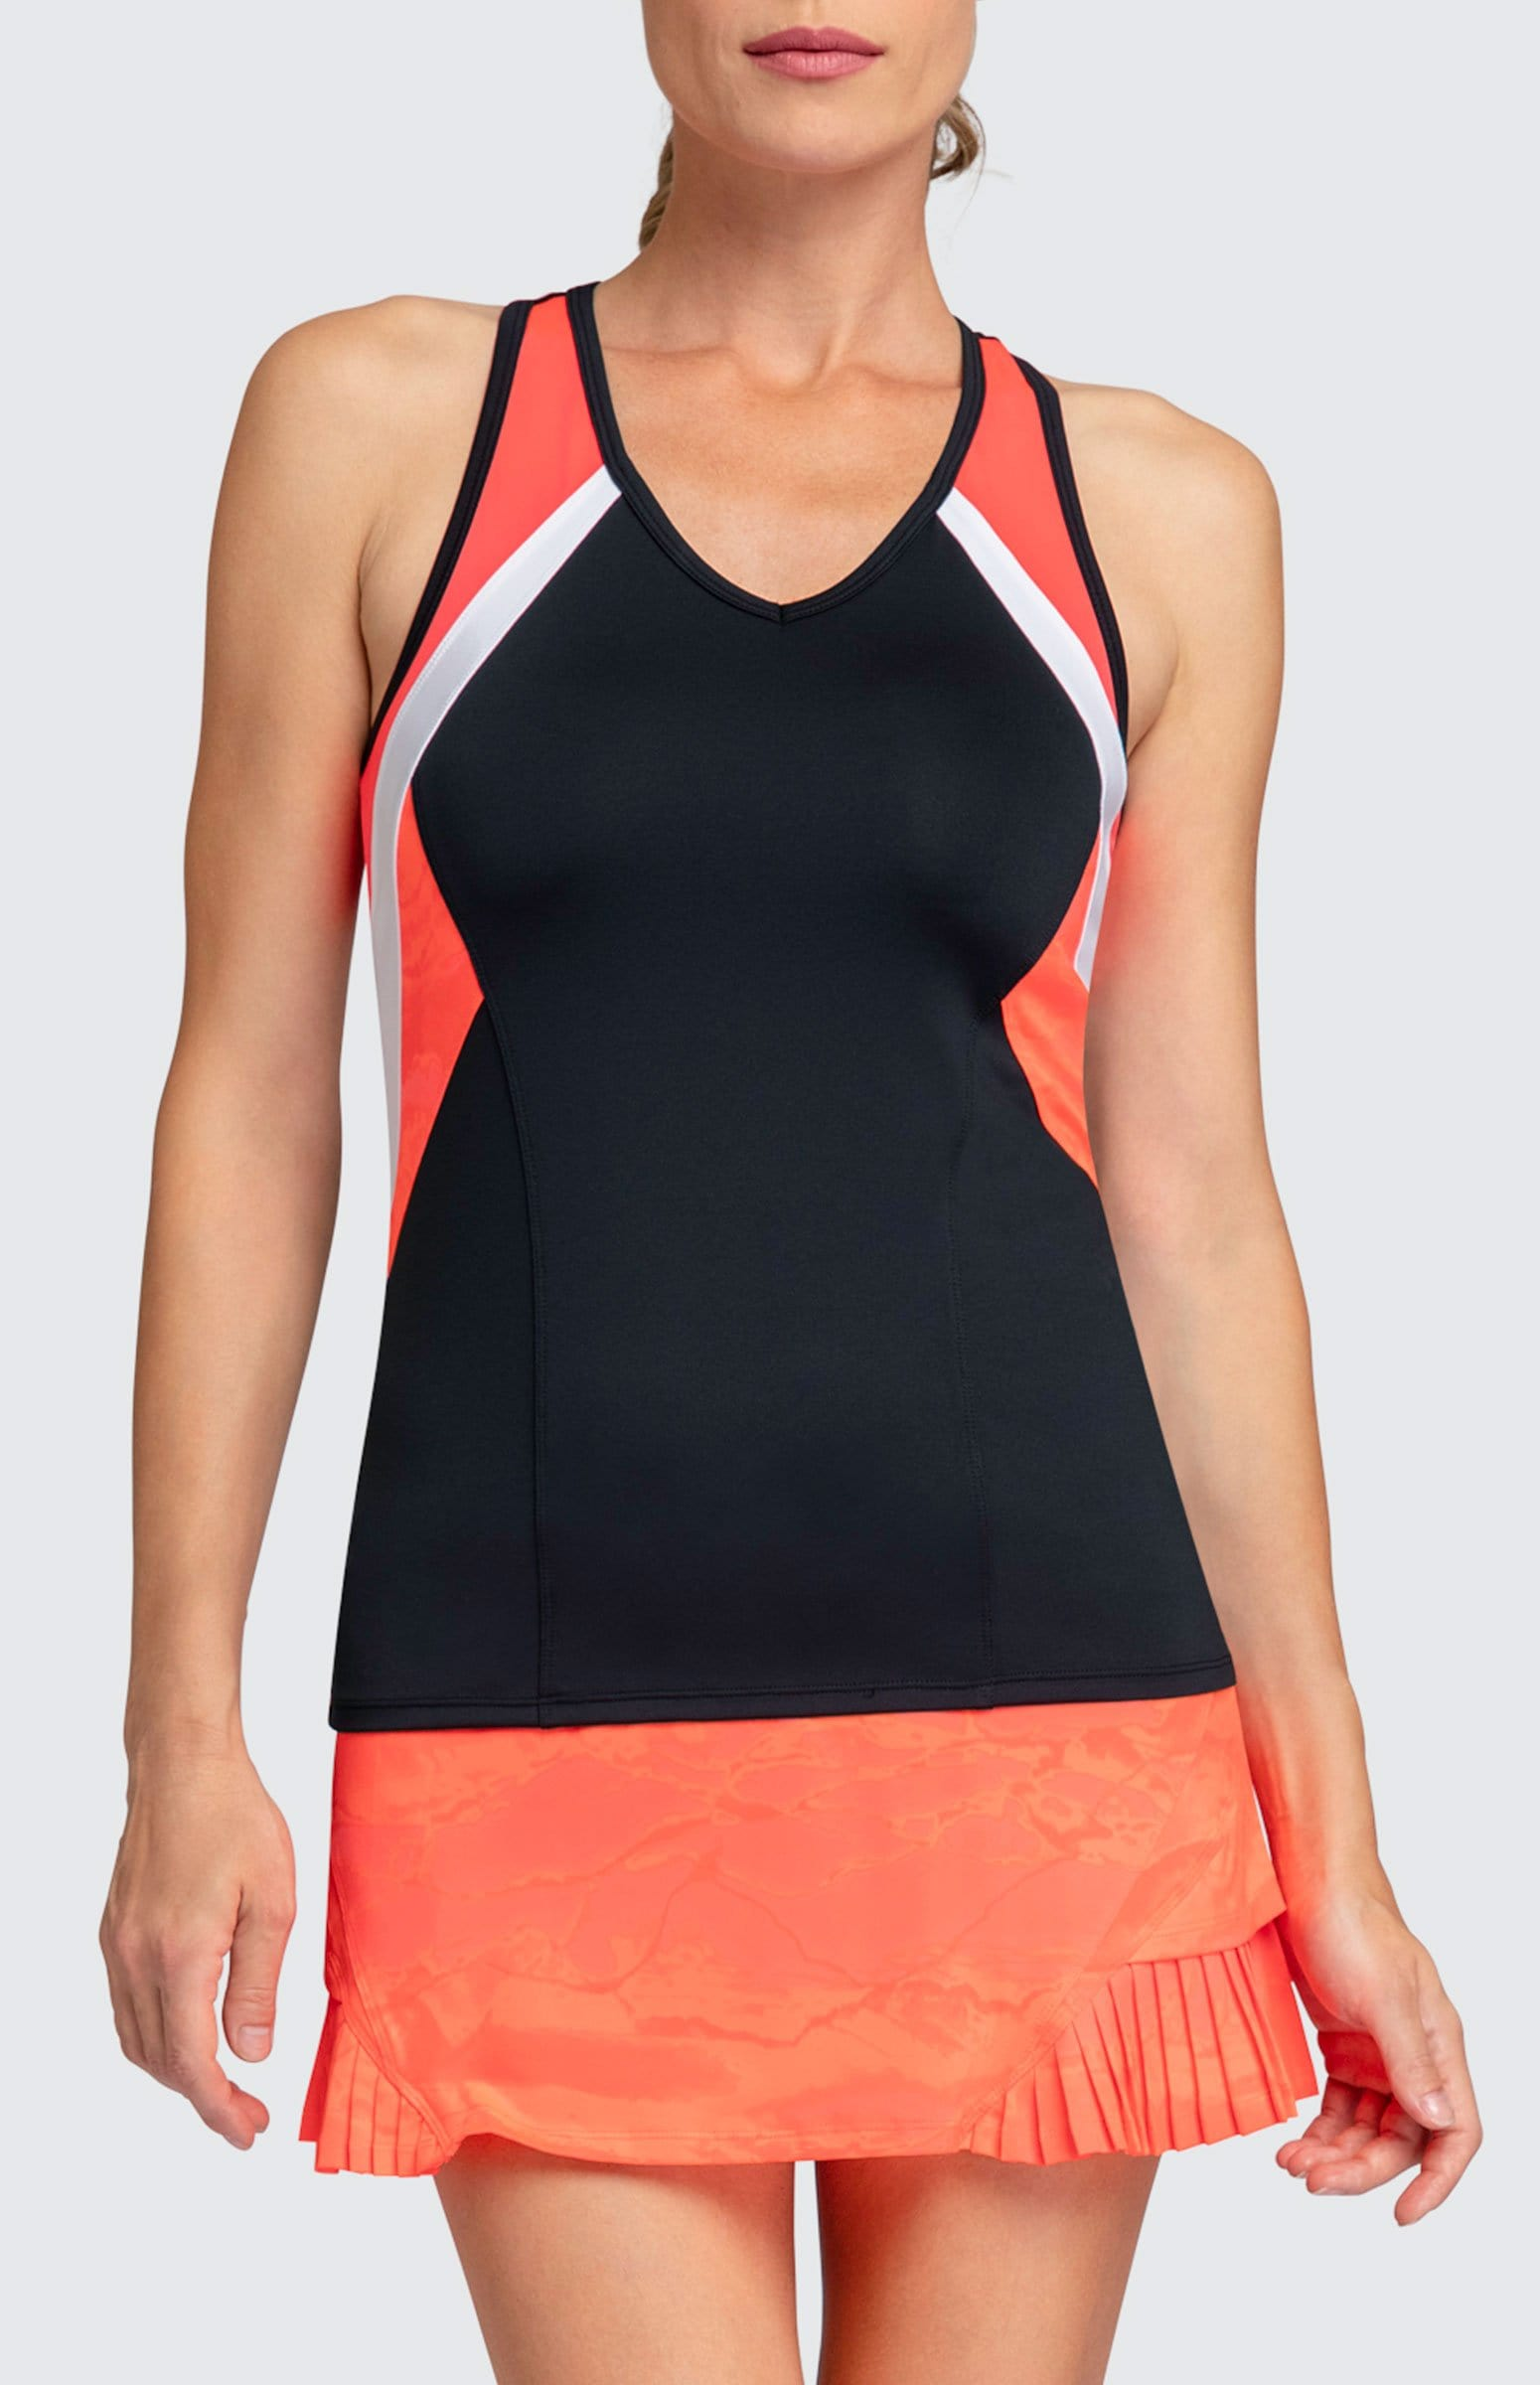 695329bf8bb0a Tanks - Tagged with All-Tennis-Tops - TAIL Activewear